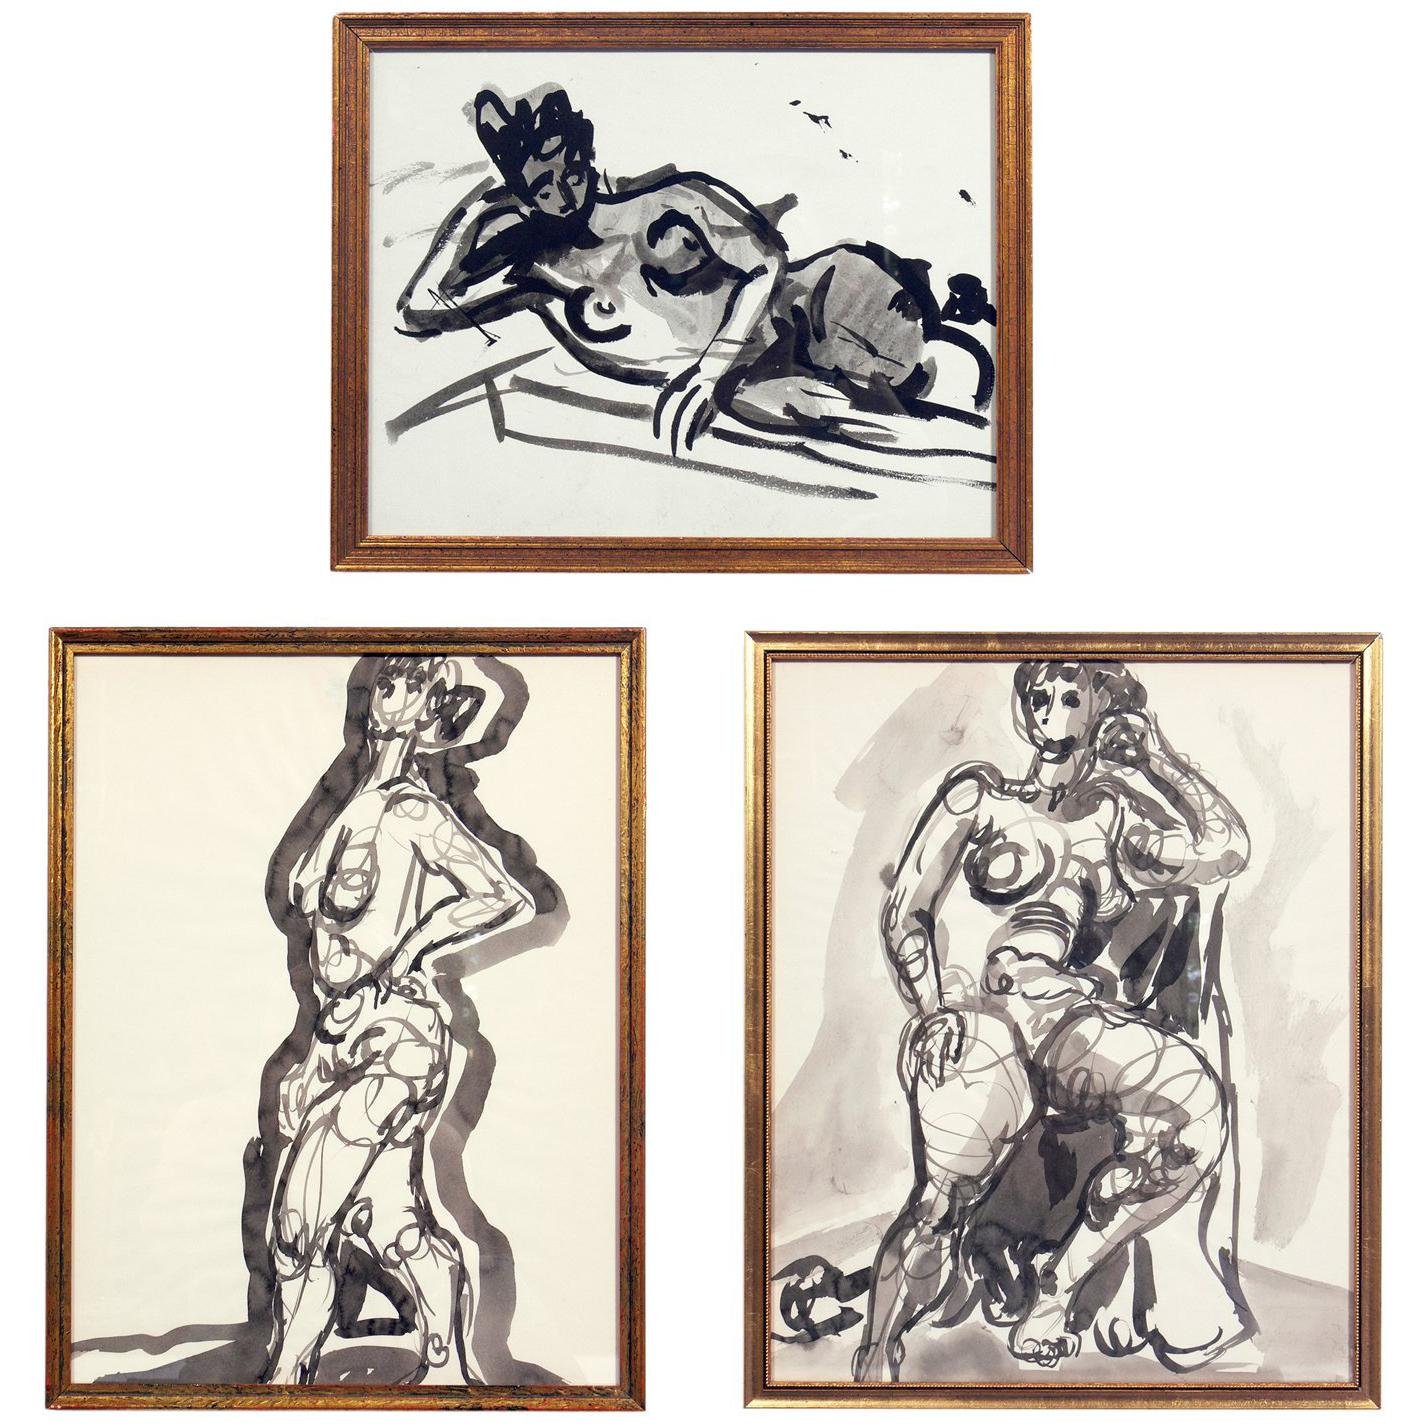 Selection of Female Nude Paintings or Gallery Wall by Miriam Kubach